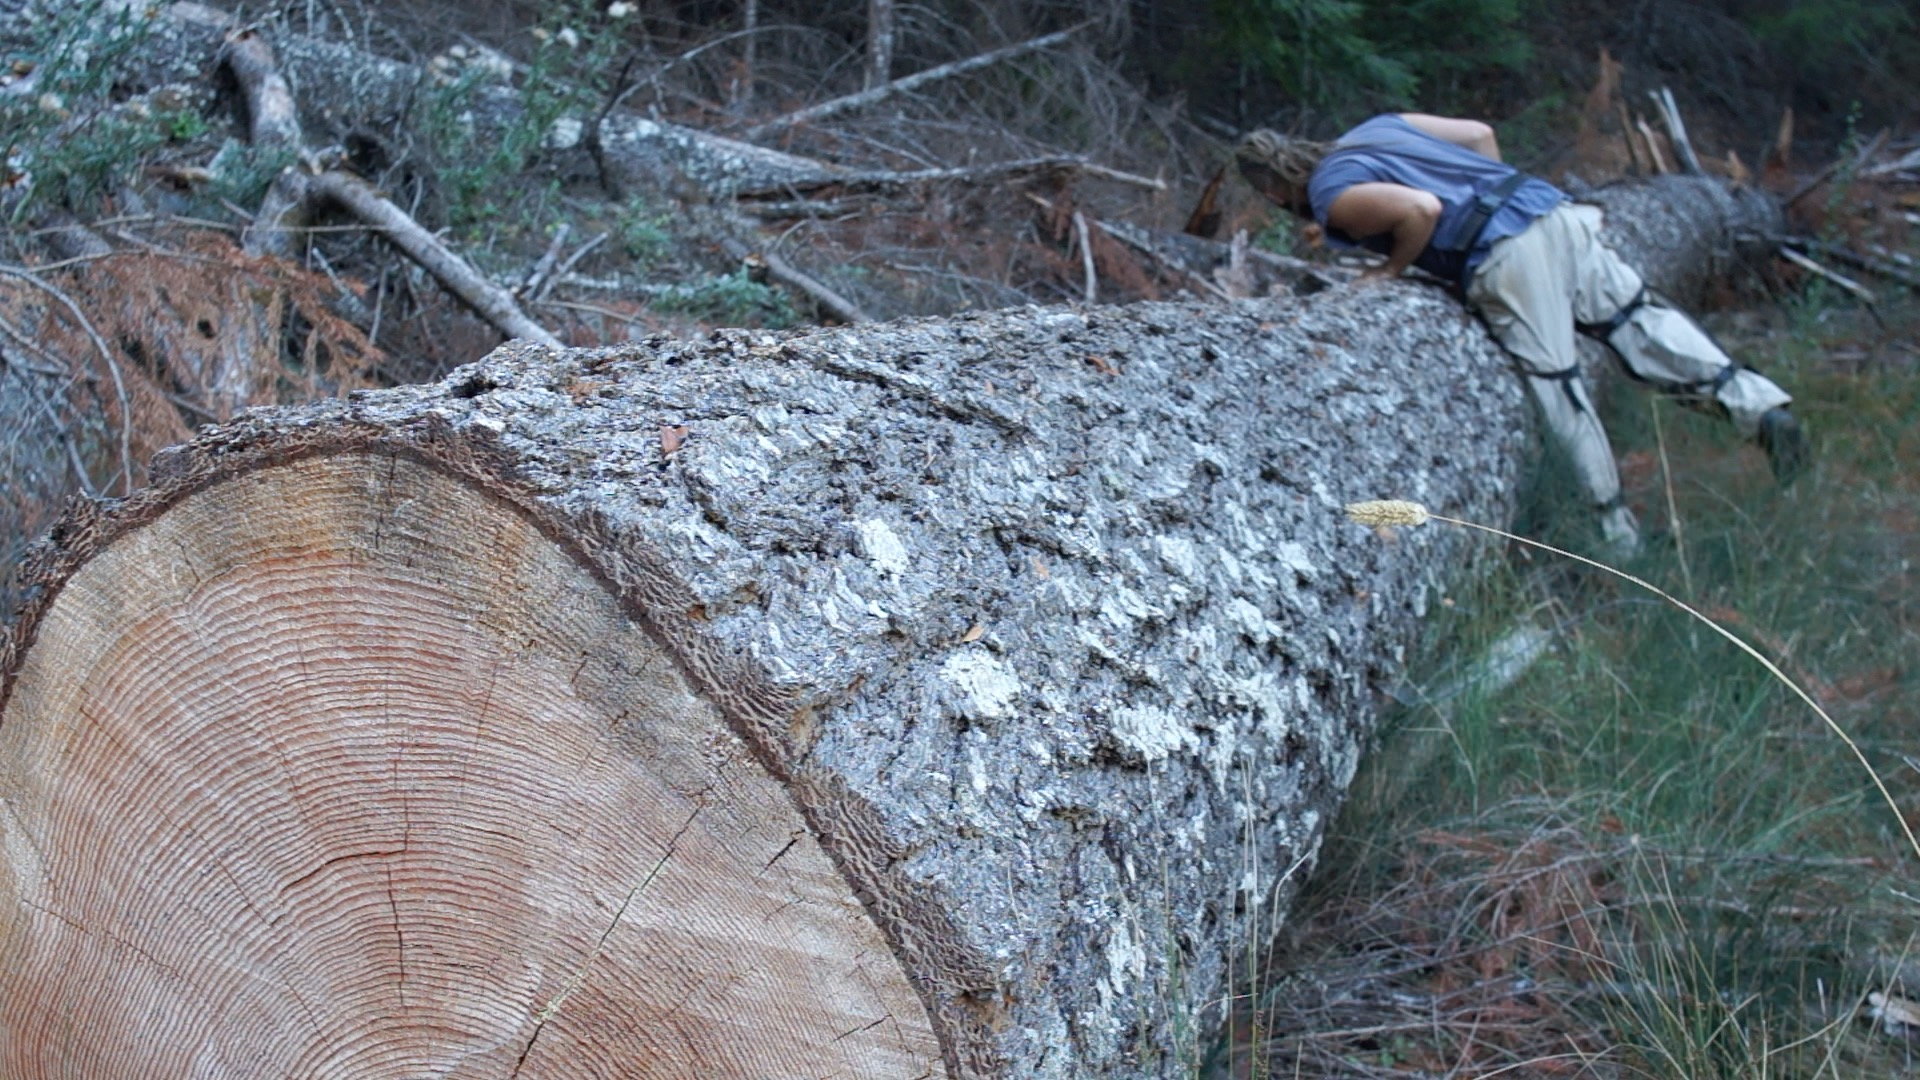 A big fir tree at my neighbors that I hope to make some stuff out of in 2016. It isn't fine old growth quality, but it's pretty good and big enough to get some nice vertical grain planks out of.